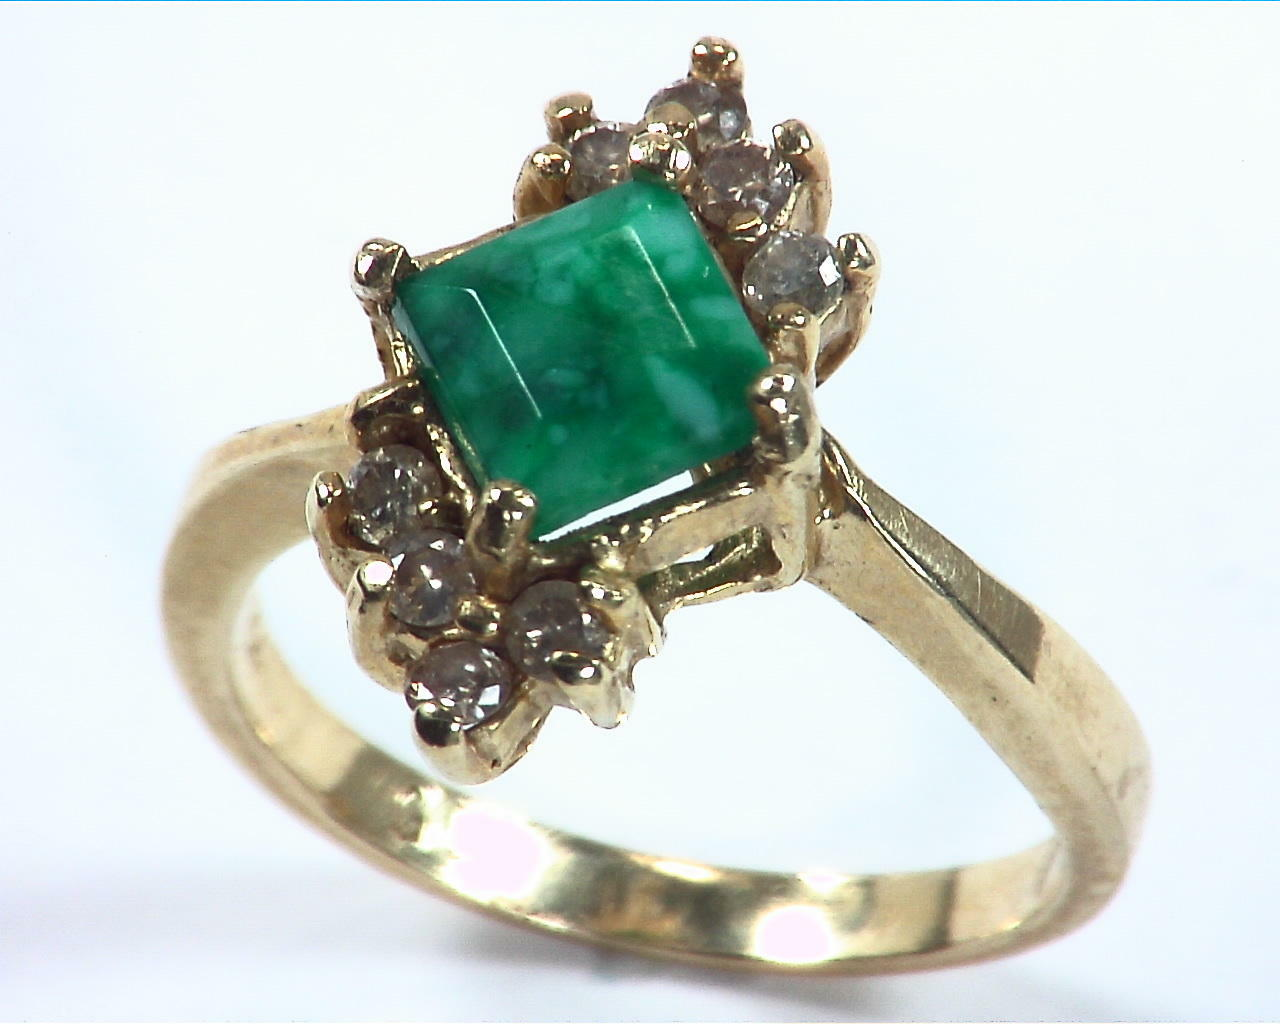 Emerald Natural Genuine Gemstone Gold And Diamond Ring RFK,158 4